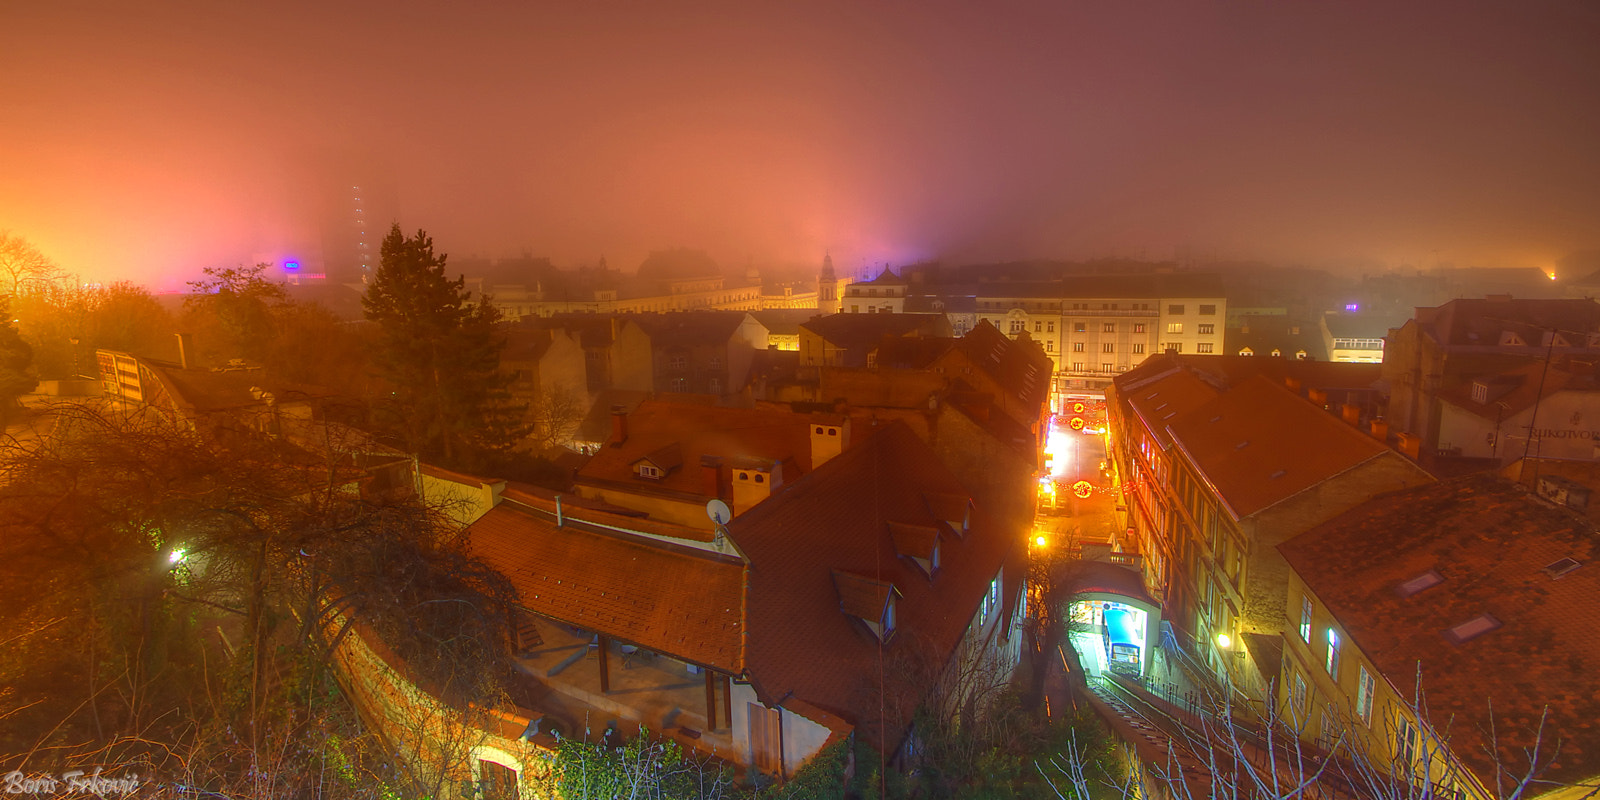 Photograph Foggy night in Zagreb by Boris Frkovic on 500px